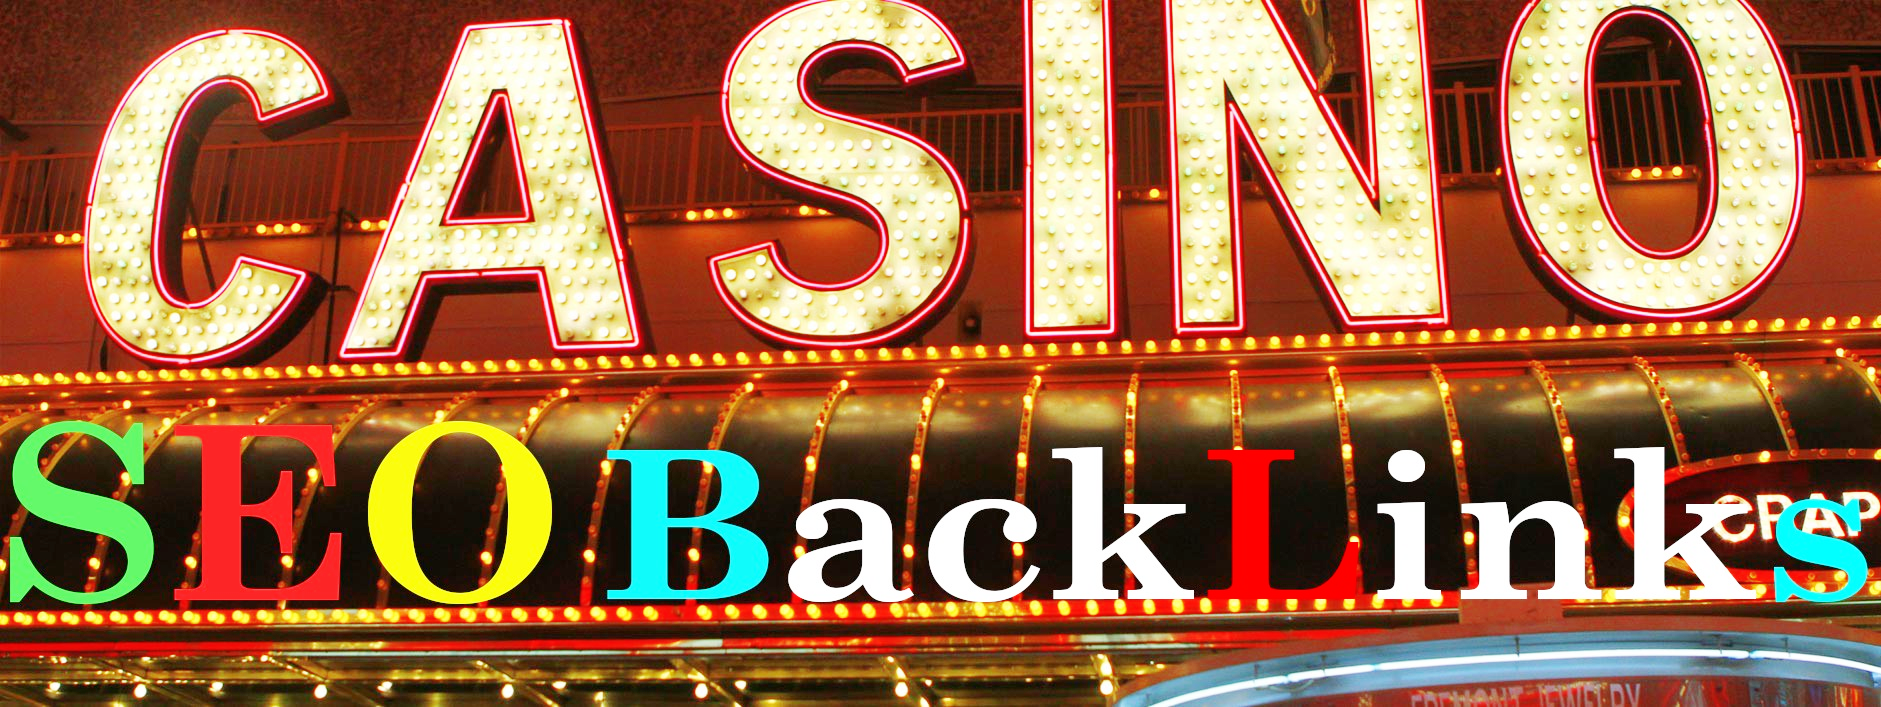 GET Extream 150+ PRIMEUM Casino PBN Backlink landing page web 2.0 with HIGH DA/PA WITH UNIQUE WEBSIT